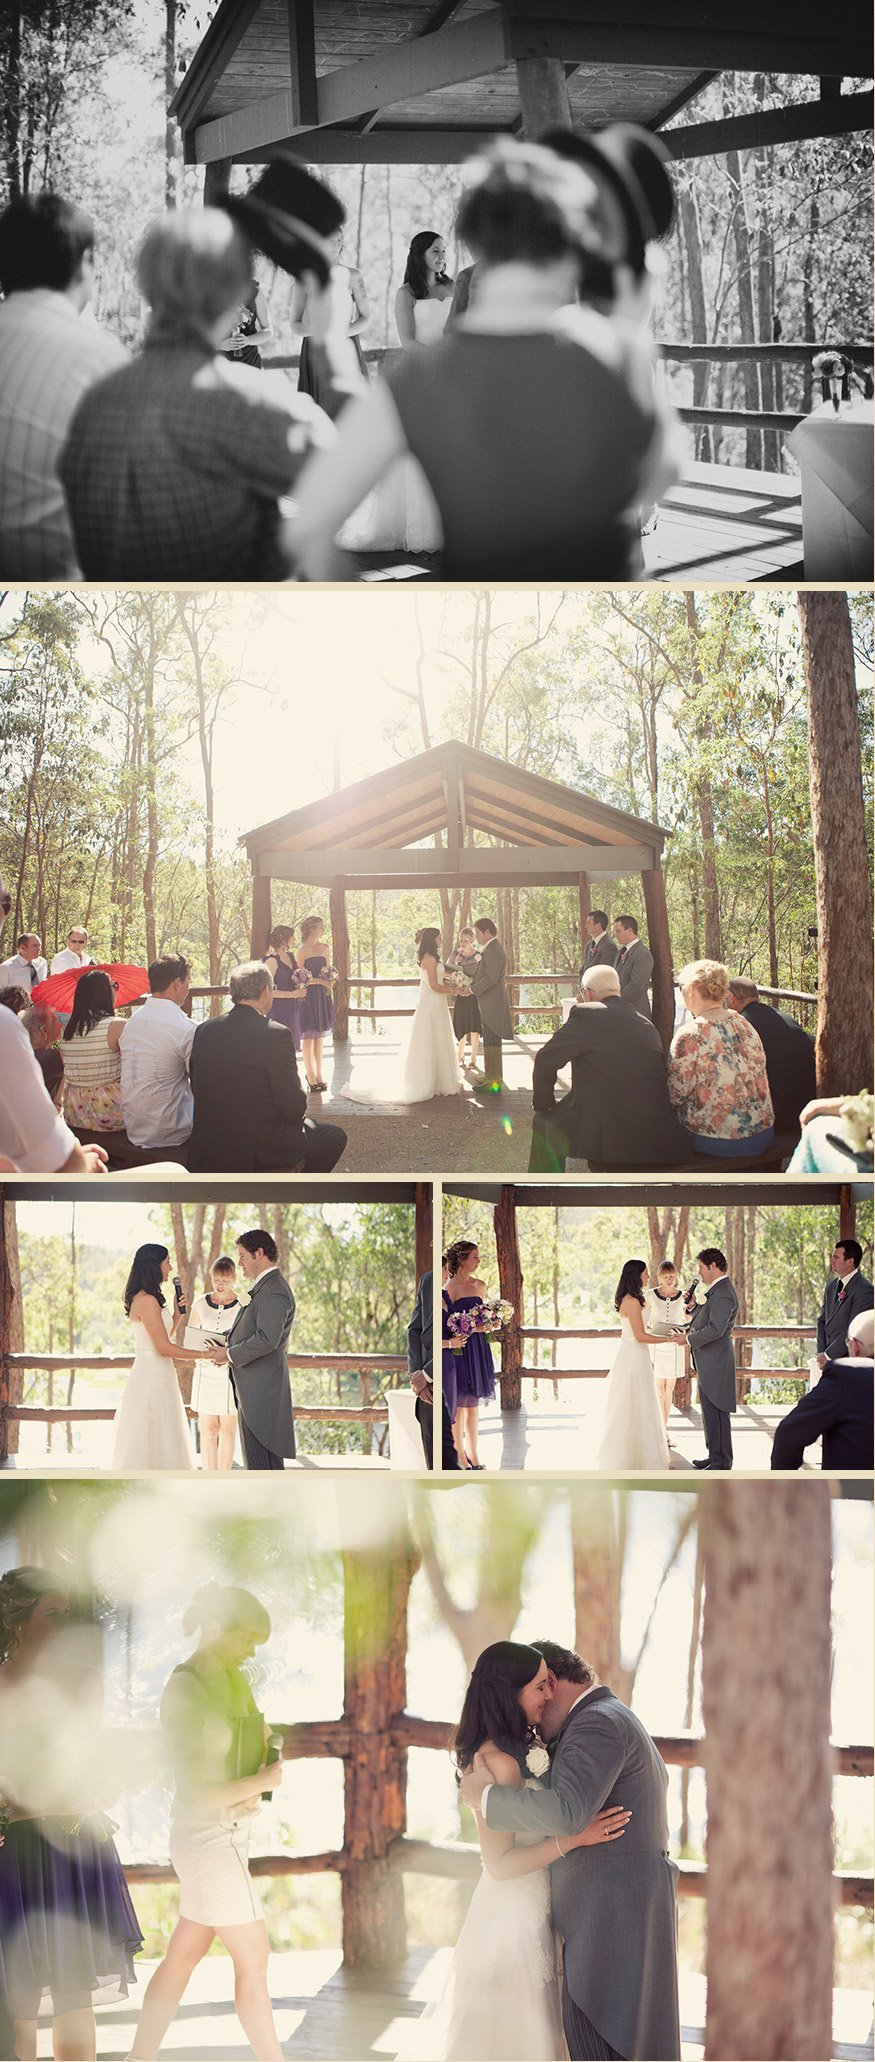 Brisbane Wedding Phoographer Blog-collage-1323534346314